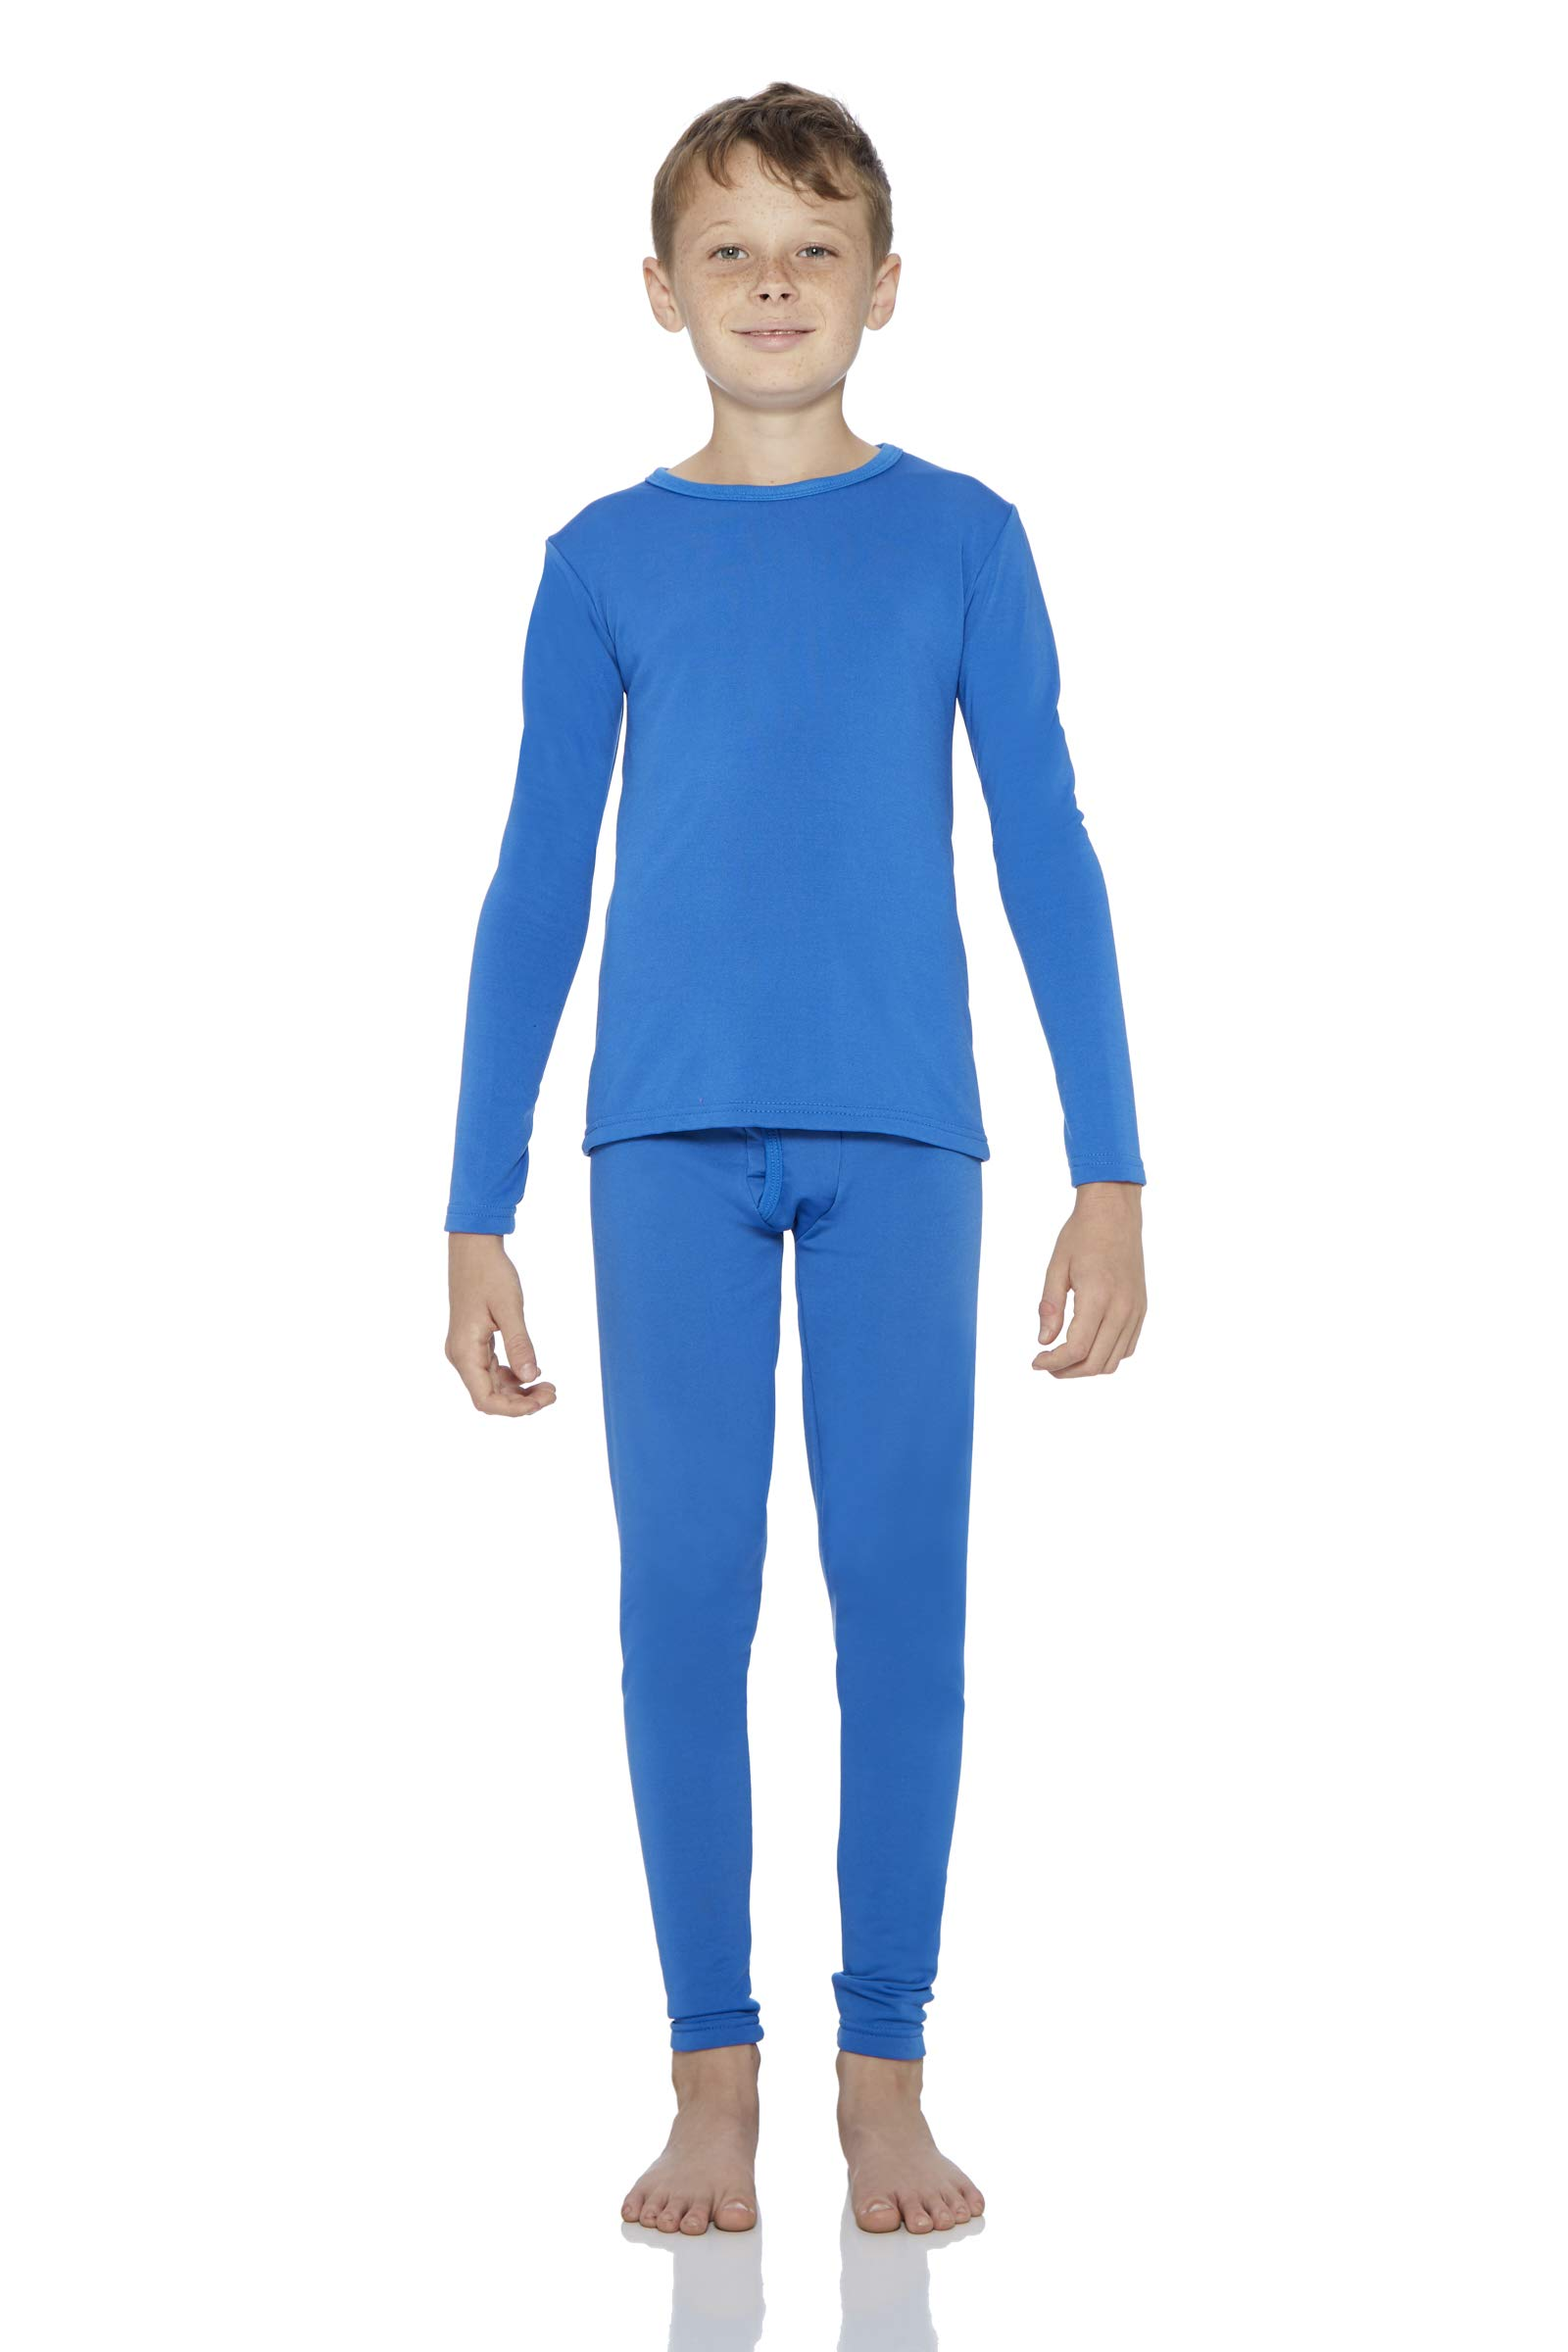 Rocky Thermal Underwear for Boys Fleece Lined Thermals Kids Base Layer Long John Set Blue by Rocky